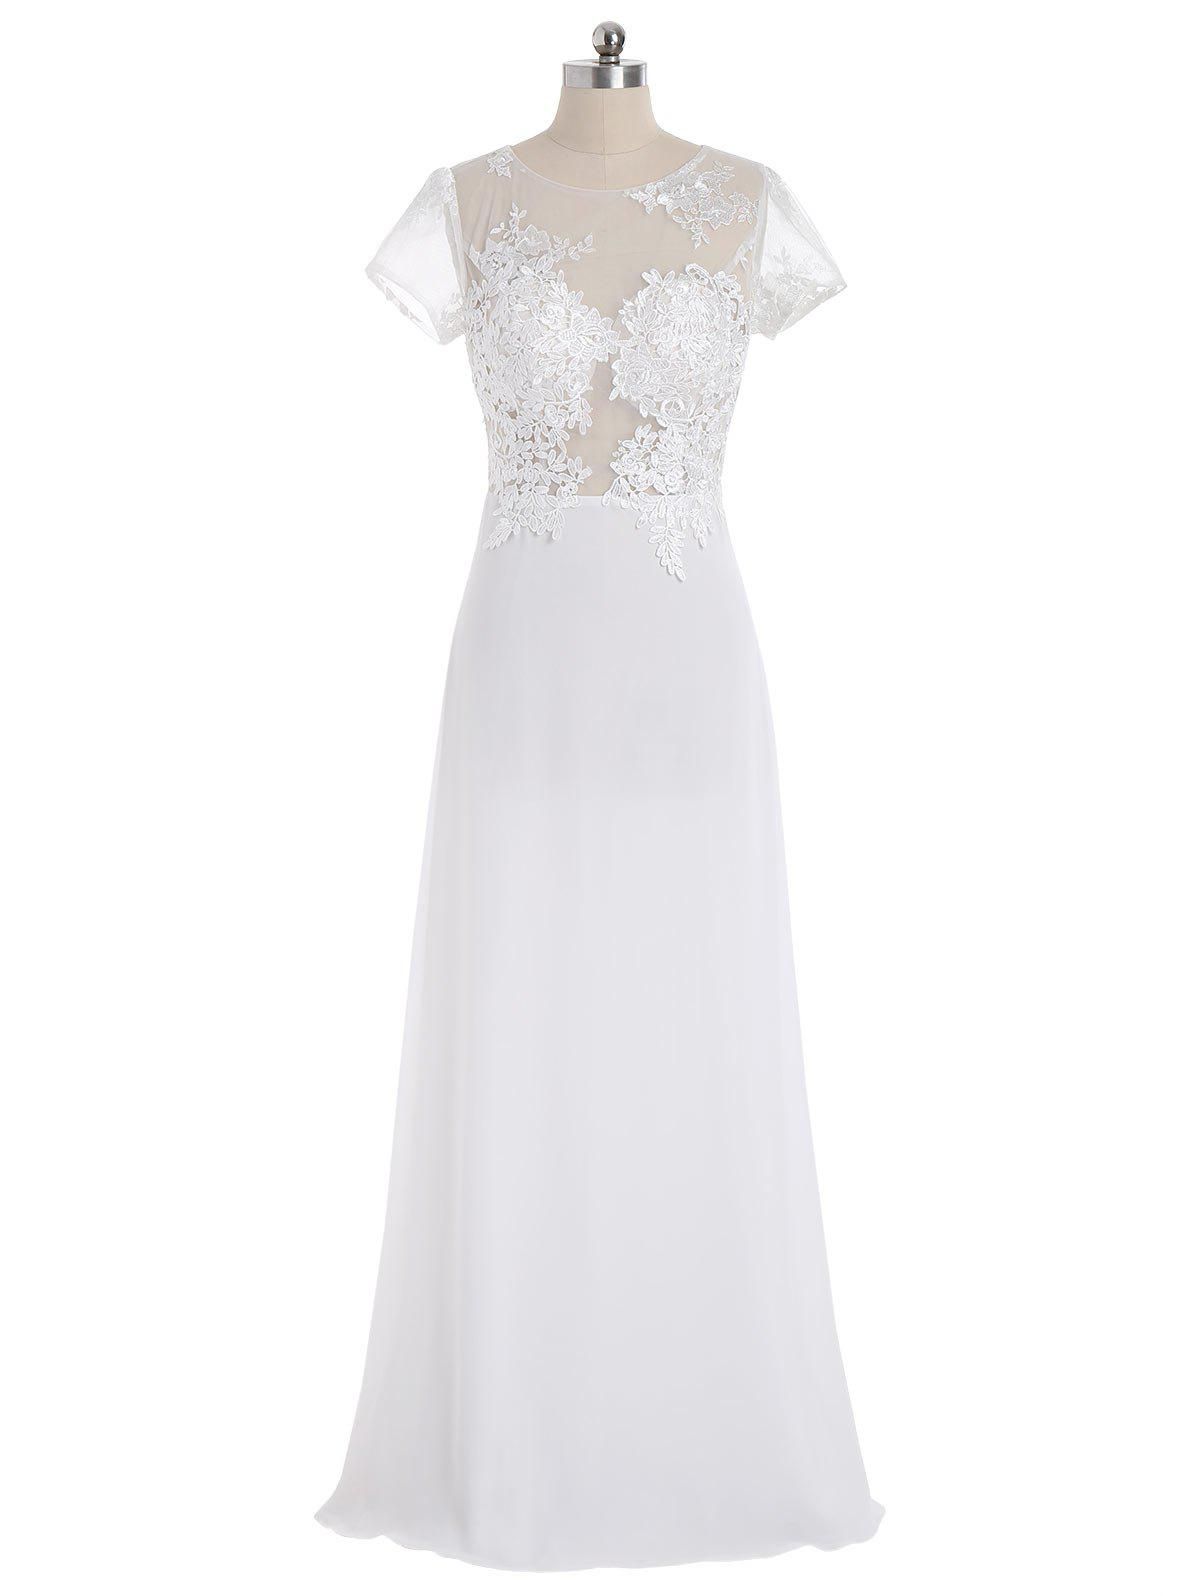 Sheer Mesh Yoke Maxi Evening Dress - WHITE L